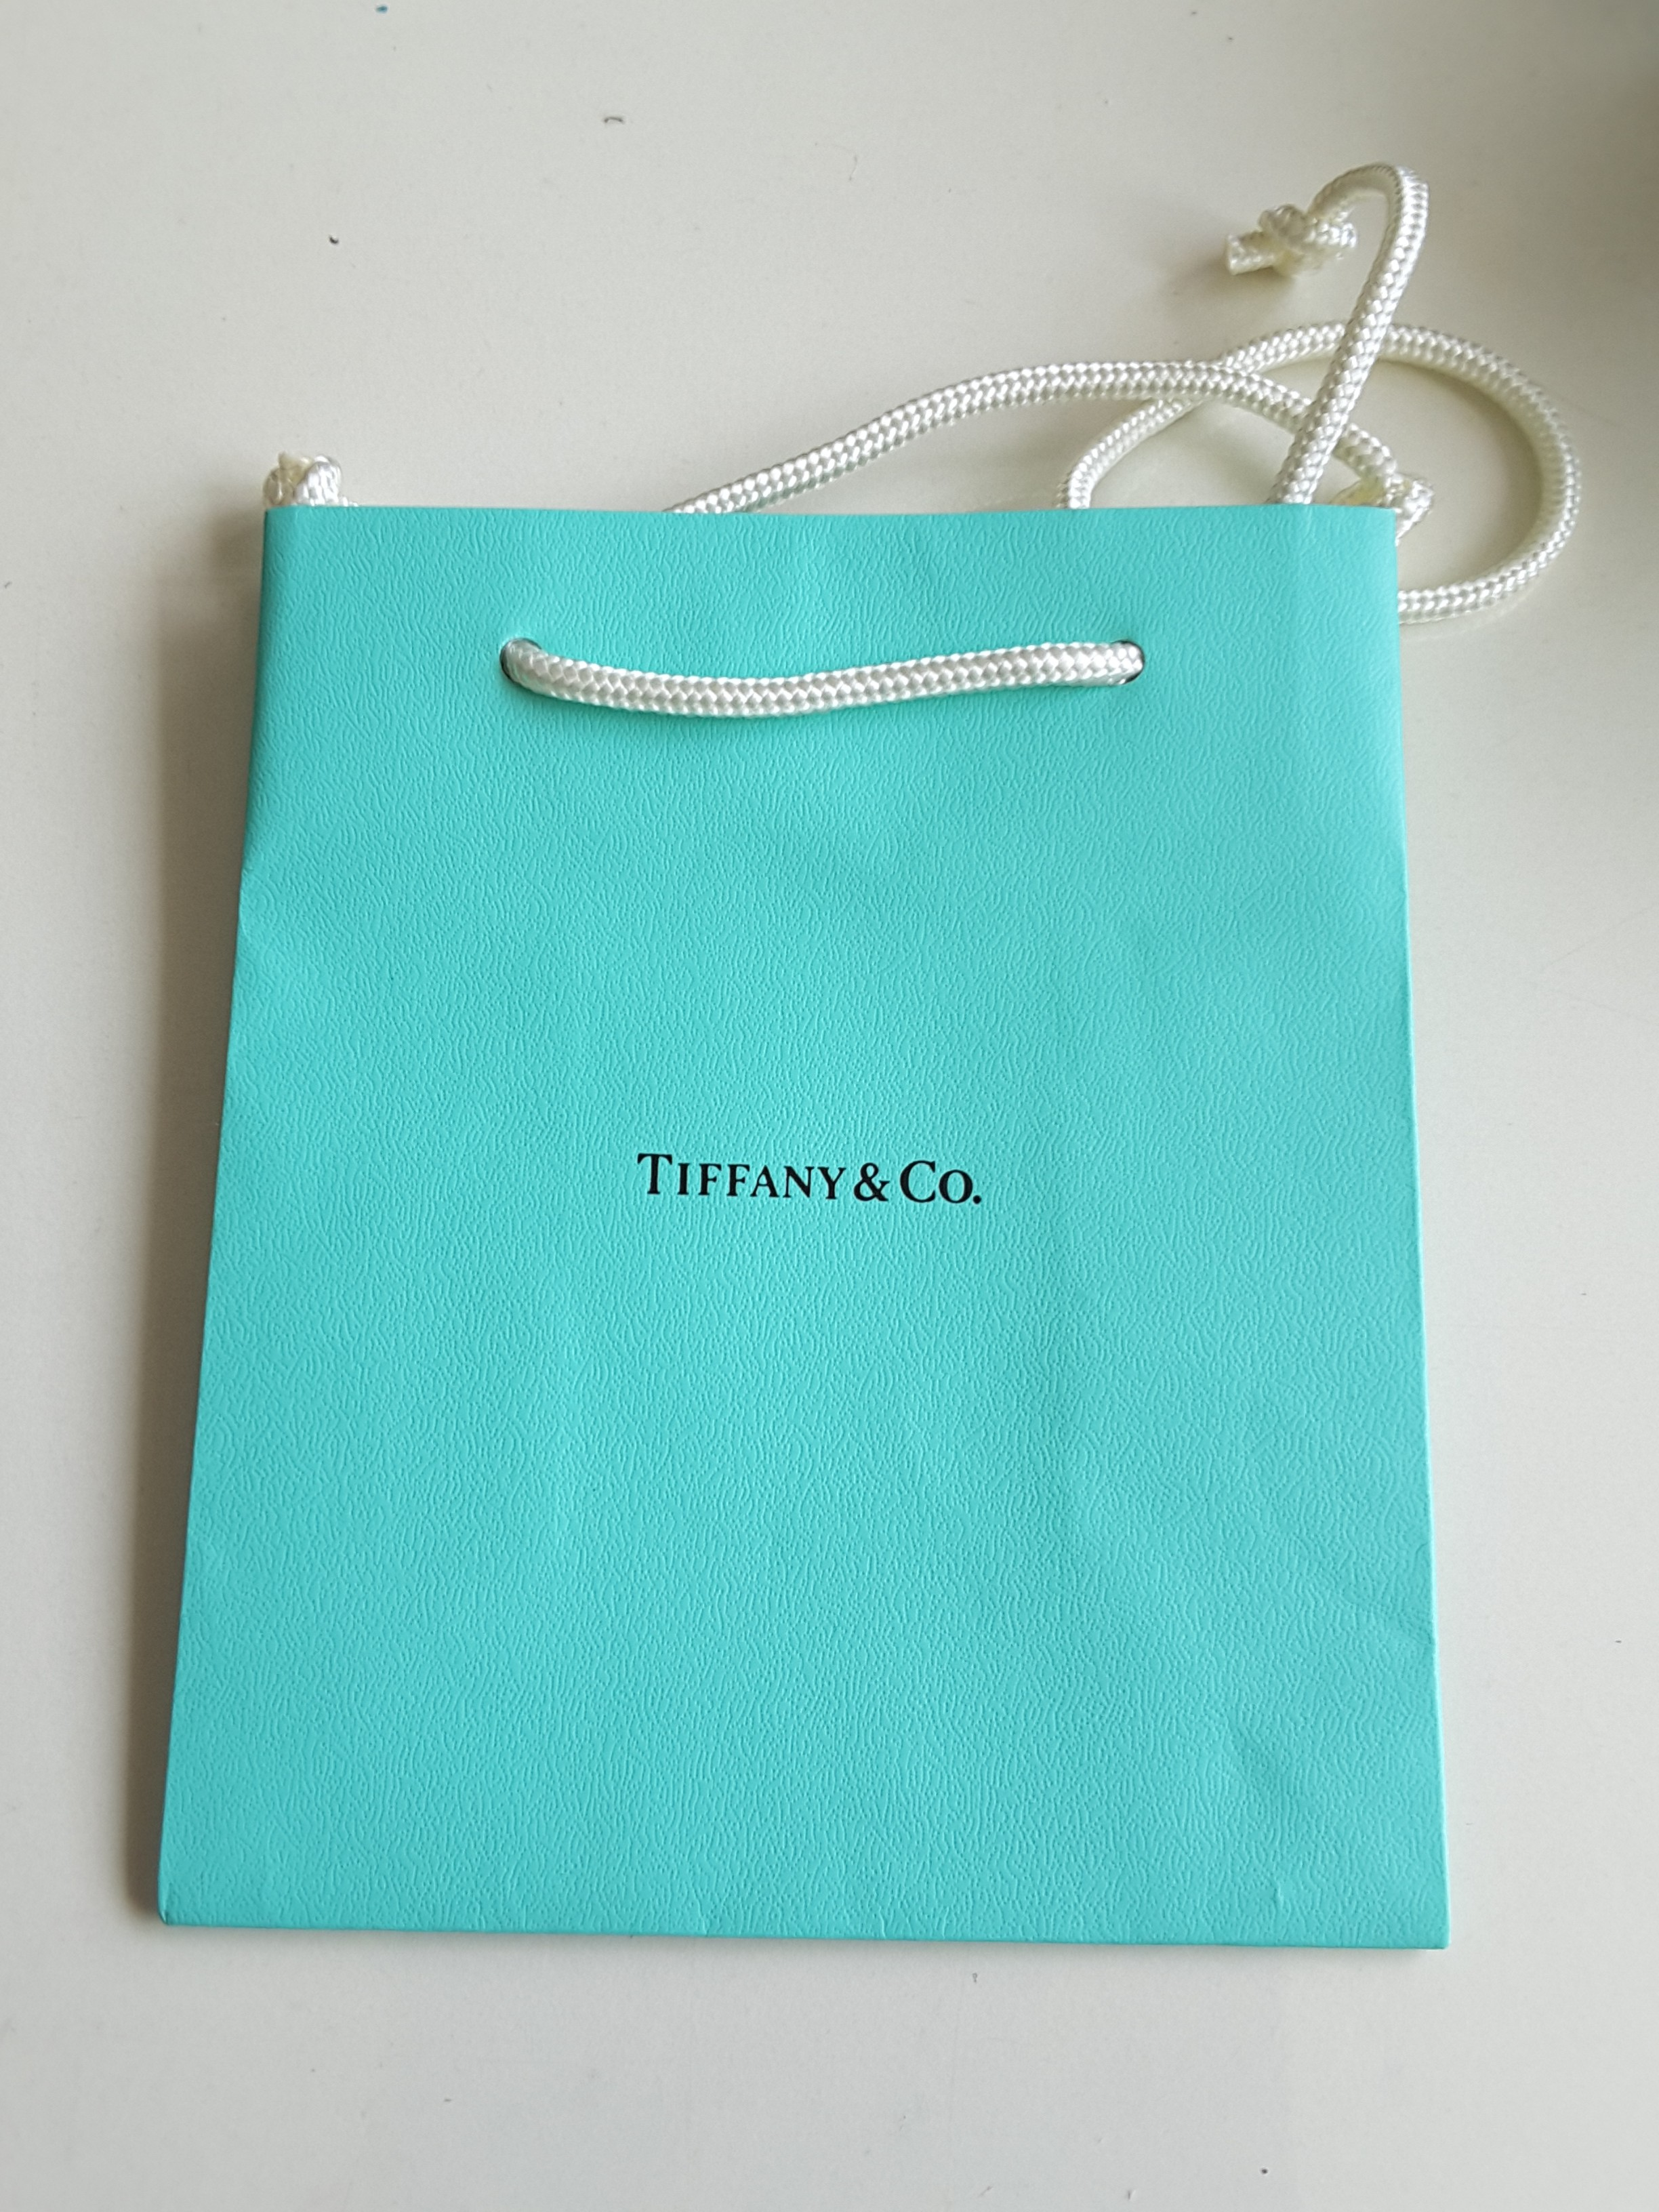 9d271e0978 Tiffany and Co Paper Bag, Luxury, Accessories, Others on Carousell